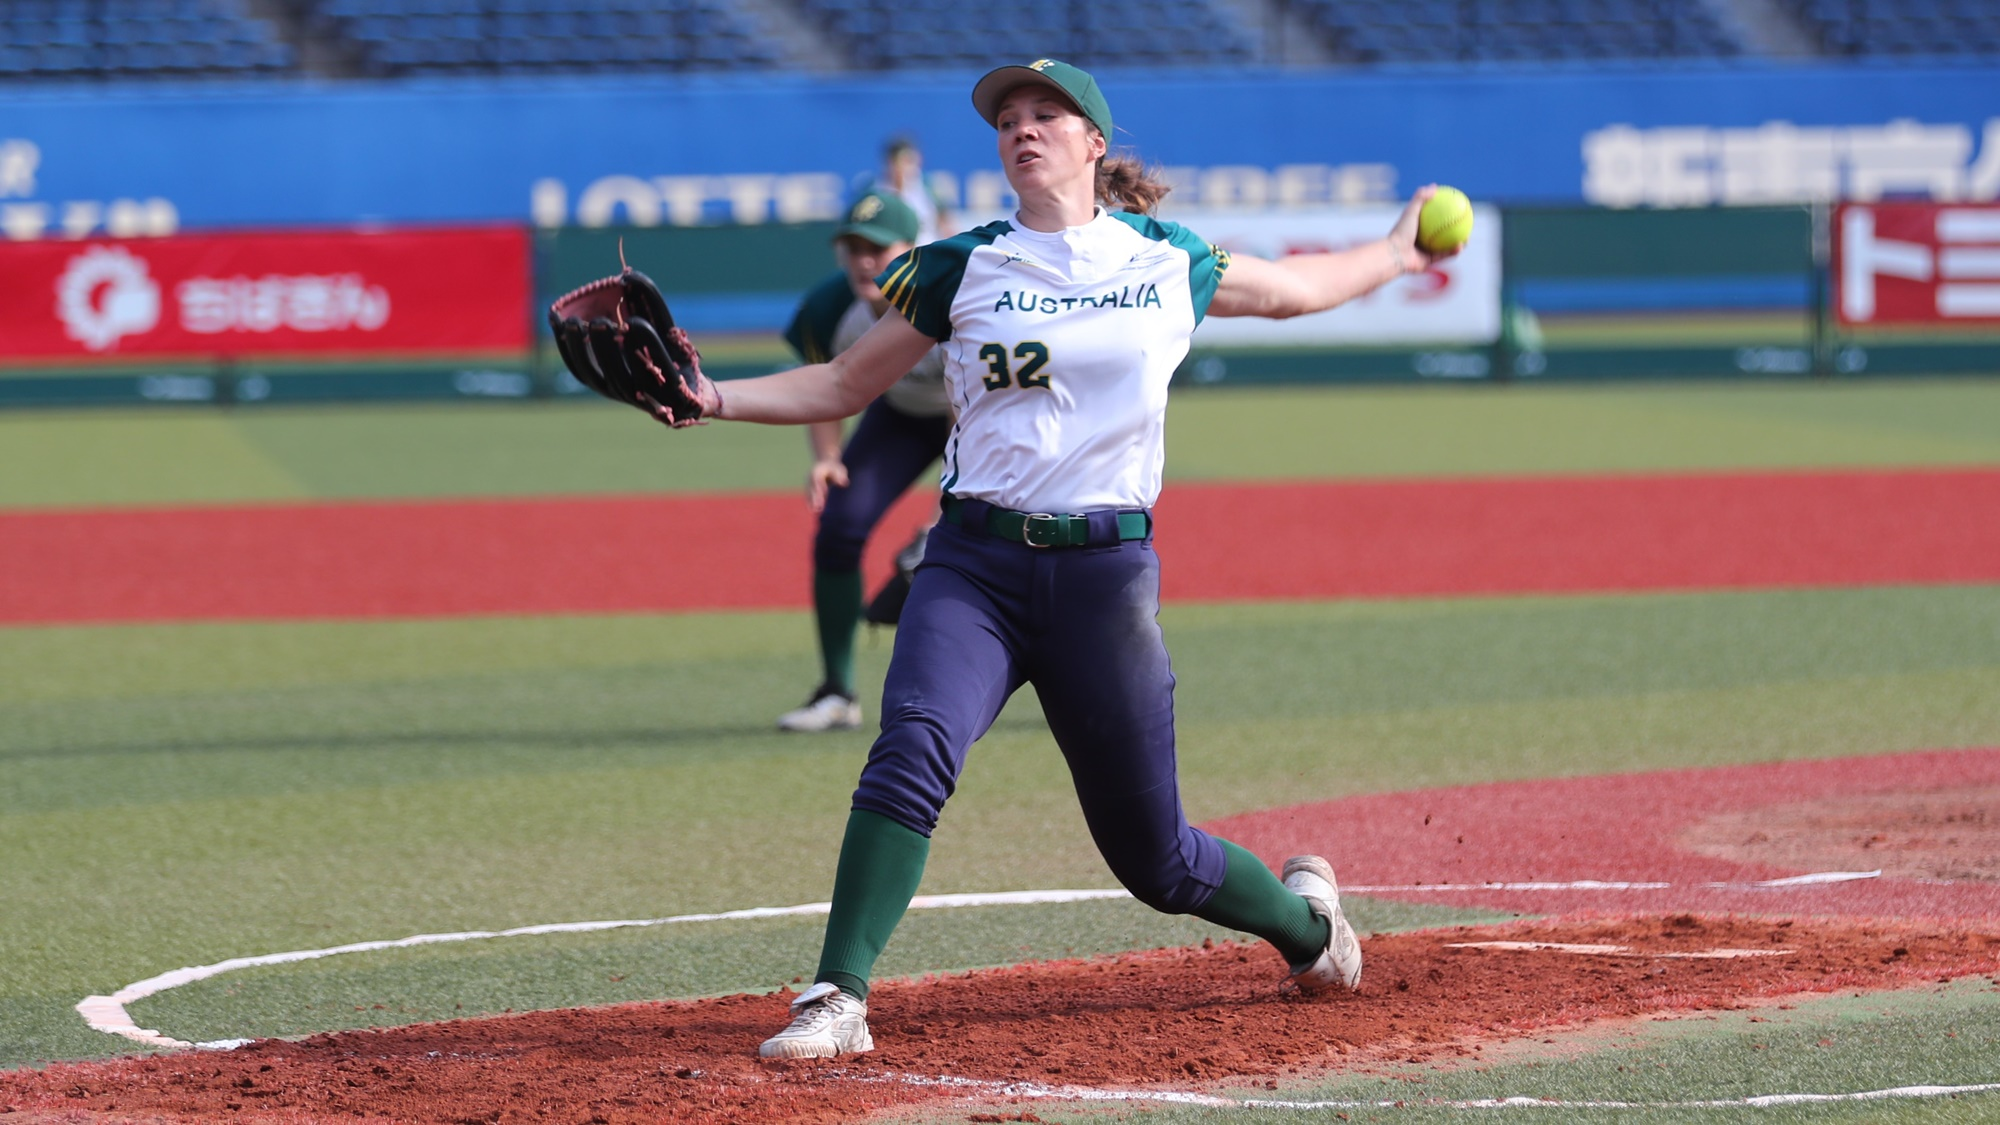 Kaia Parnaby pitched well for Australia, didn't get full support from her defense